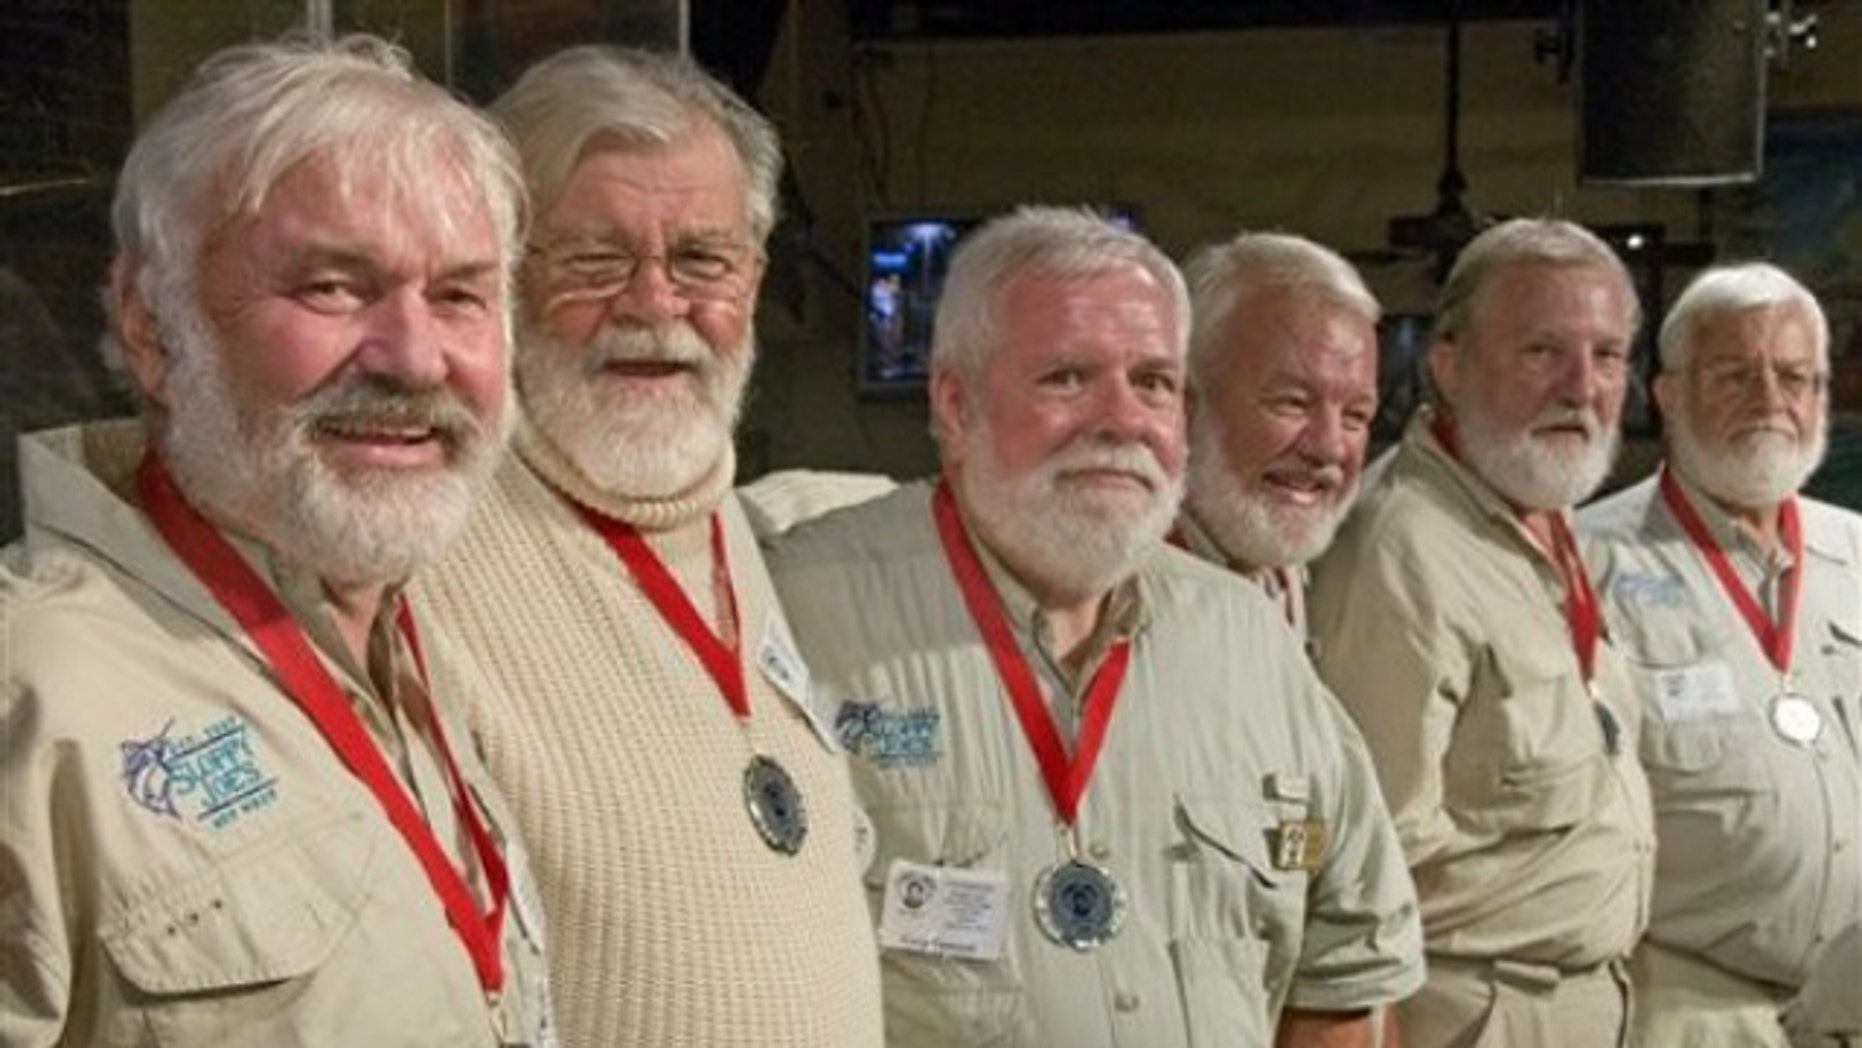 """In this photo, released by the Florida Keys News Bureau, some of the semi-finalists of the 2011 """"Papa"""" Hemingway Look-Alike Contest including, from left, Arnie Inge-Mathisen, Bear Hoochuck, Greg Fawcett, Charlie Boice, Ed Lindoo and Frank Long show their to looks to the audience during the first of two preliminary rounds Thursday, July 21, 2011, at Sloppy Joe's Bar in Key West, Fla. More than 120 men resembling Ernest Hemingway are entered into the contest that is a facet of Key West's annual Hemingway Days festival. The finals are set for Saturday, July 23."""